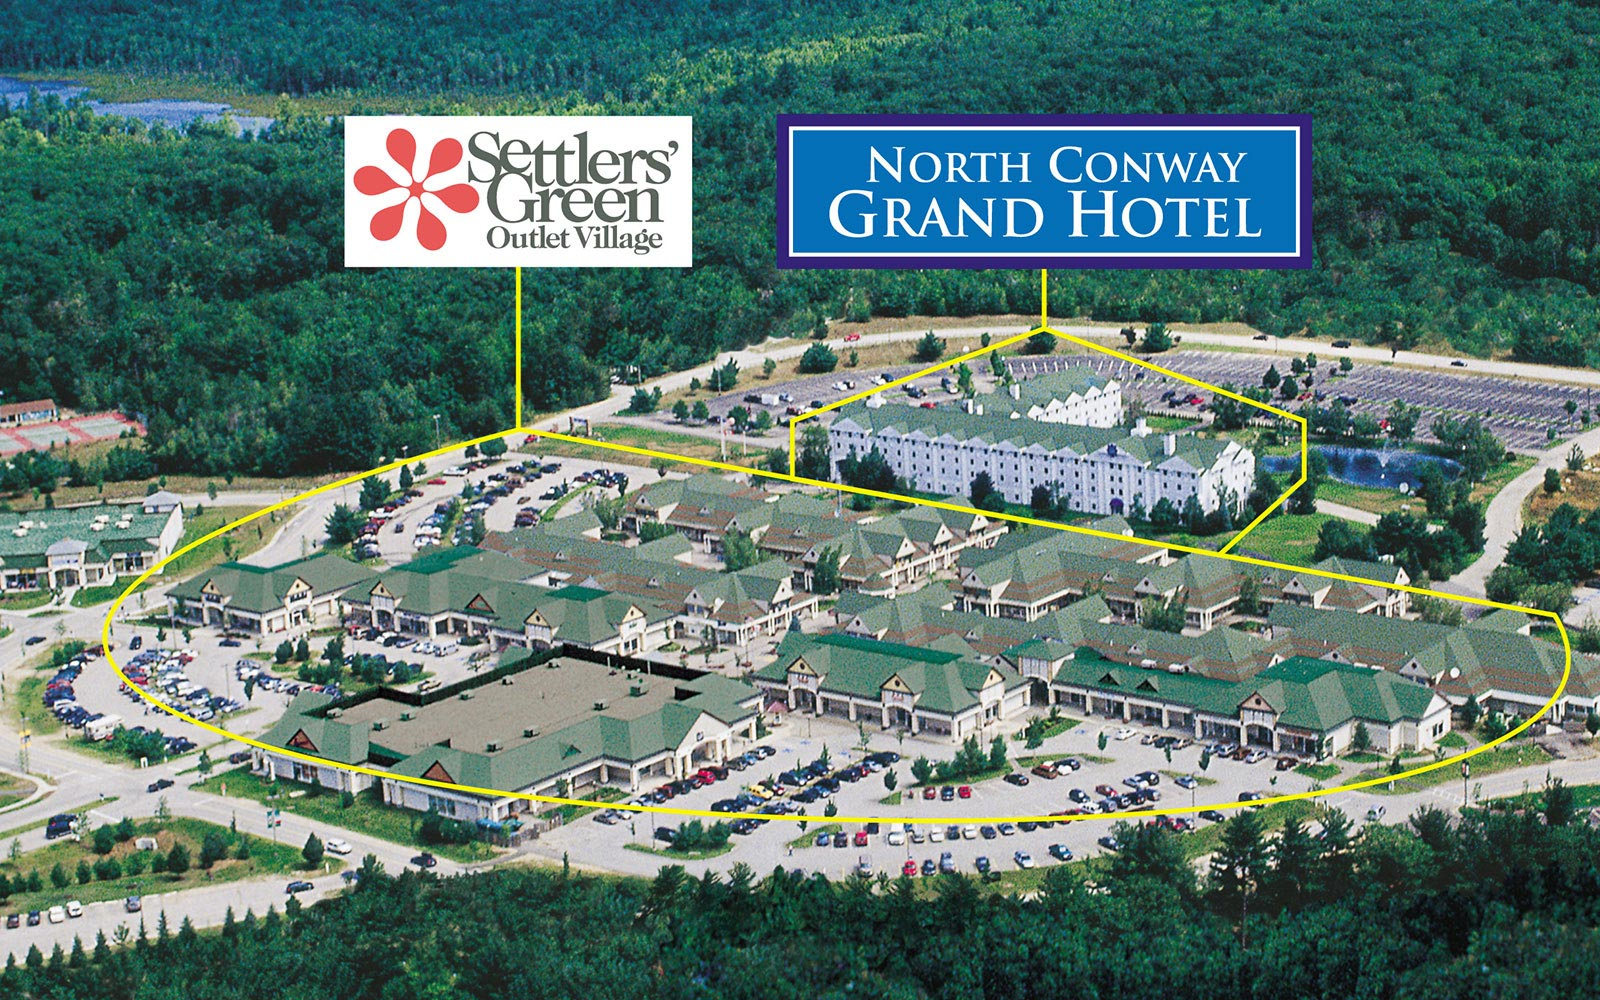 Hotel New Green View North Conway New Hampshire Hotel North Conway Grand Hotel